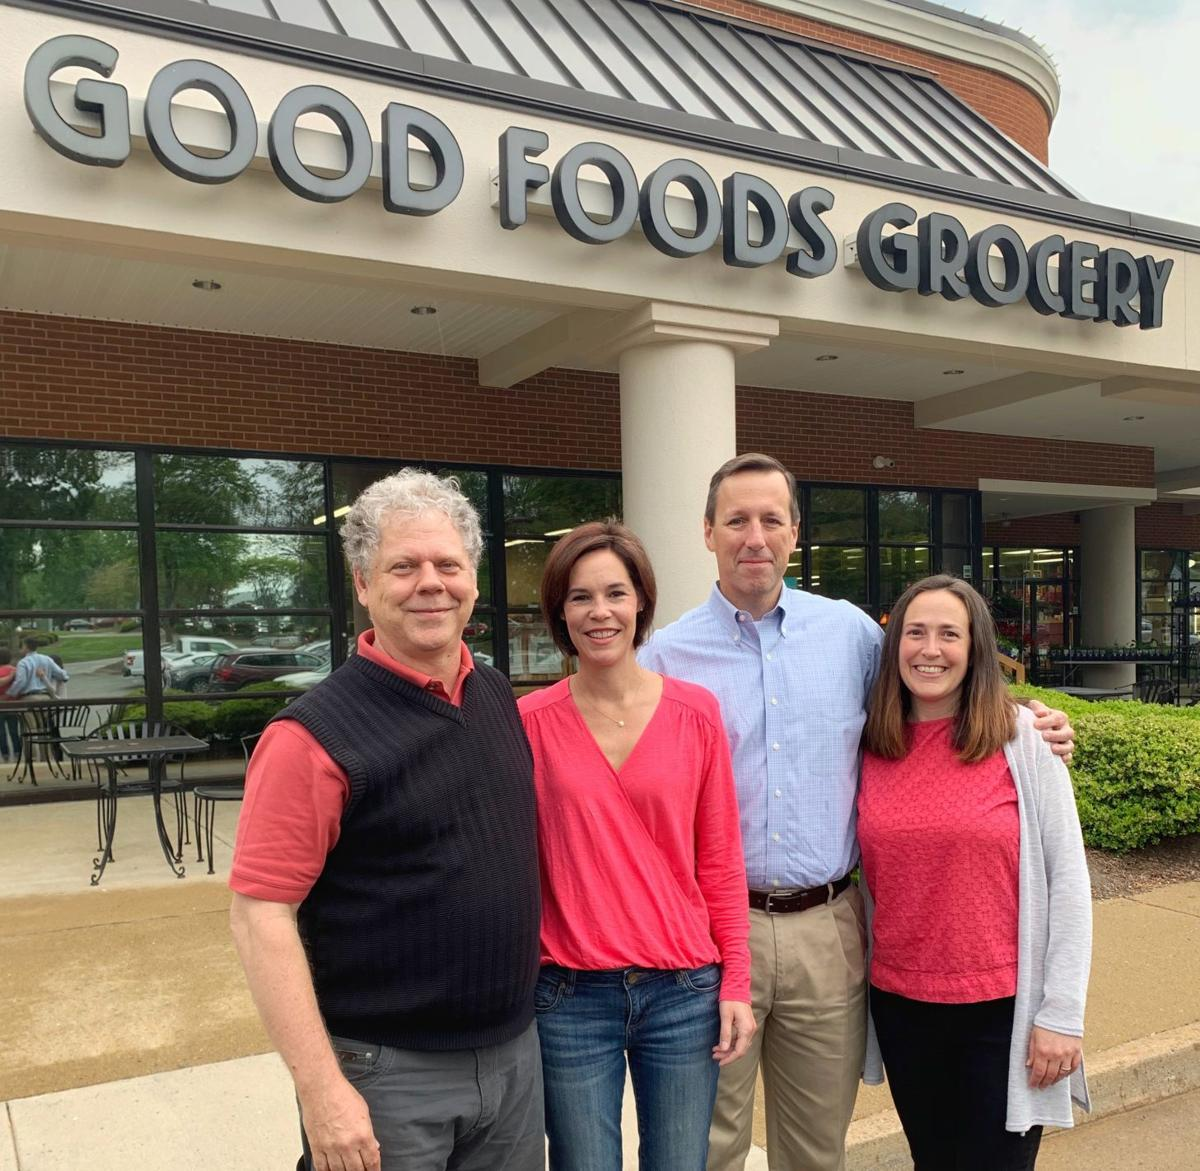 Good Foods Grocery acquires Daily Jars